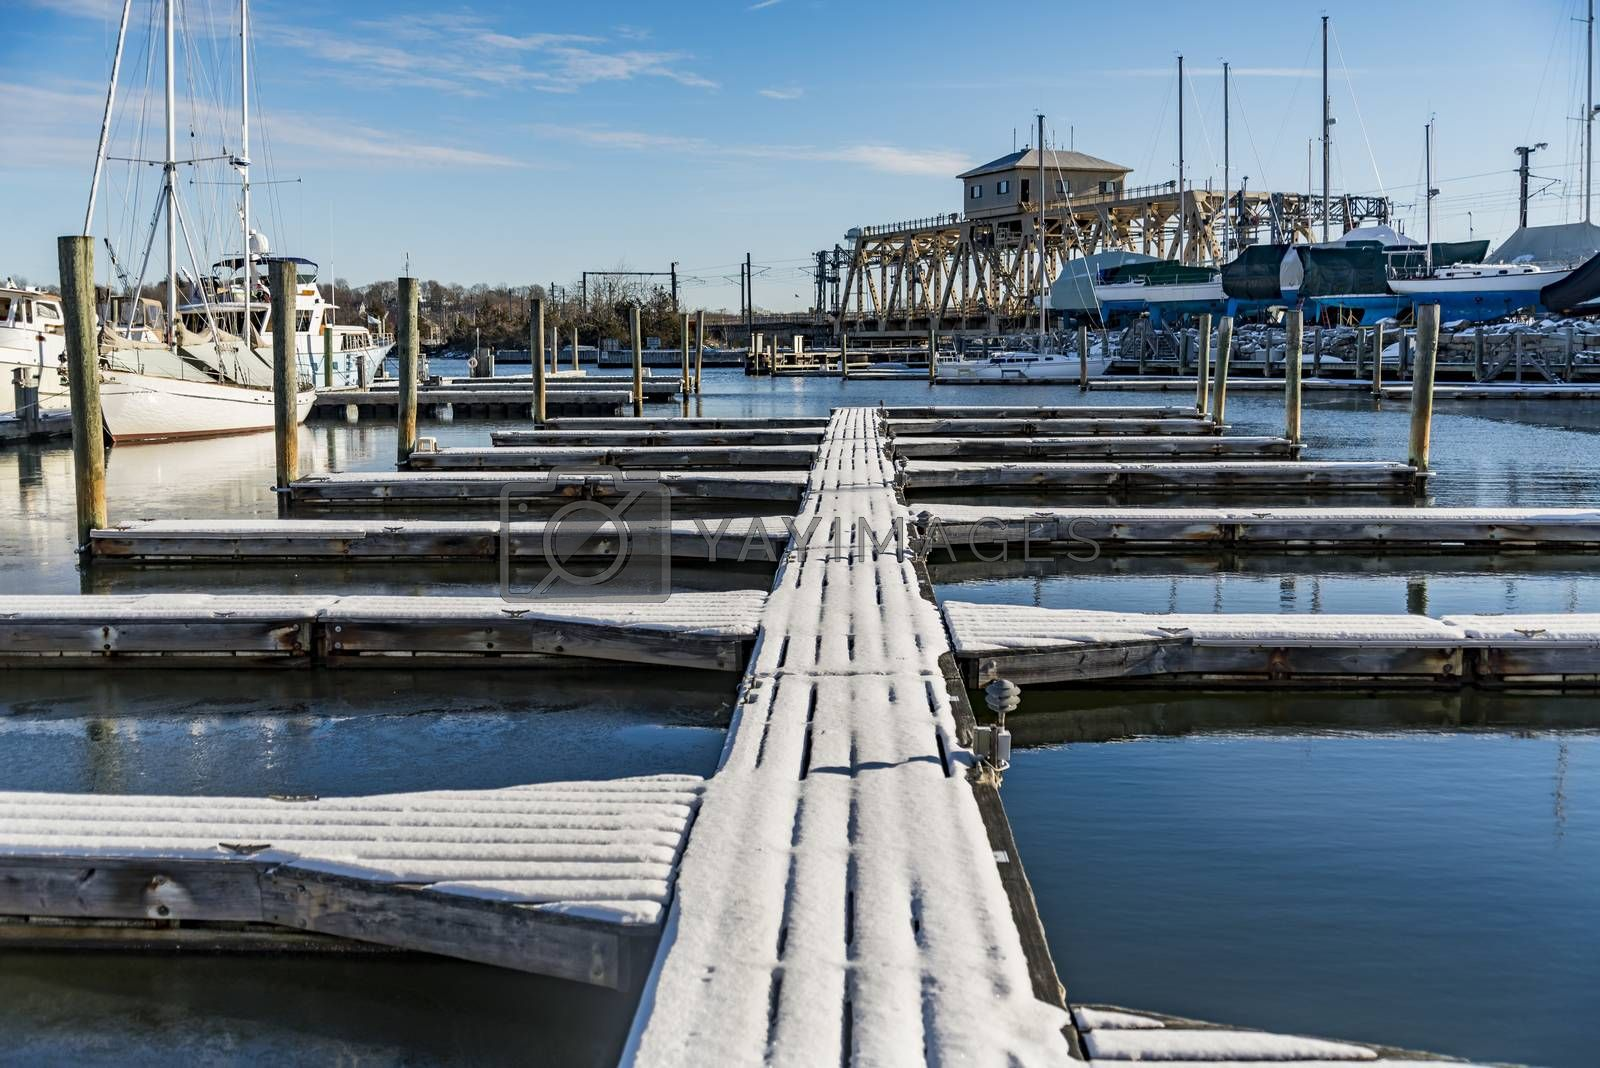 Seaport docks and boats in Mystic CT, USA